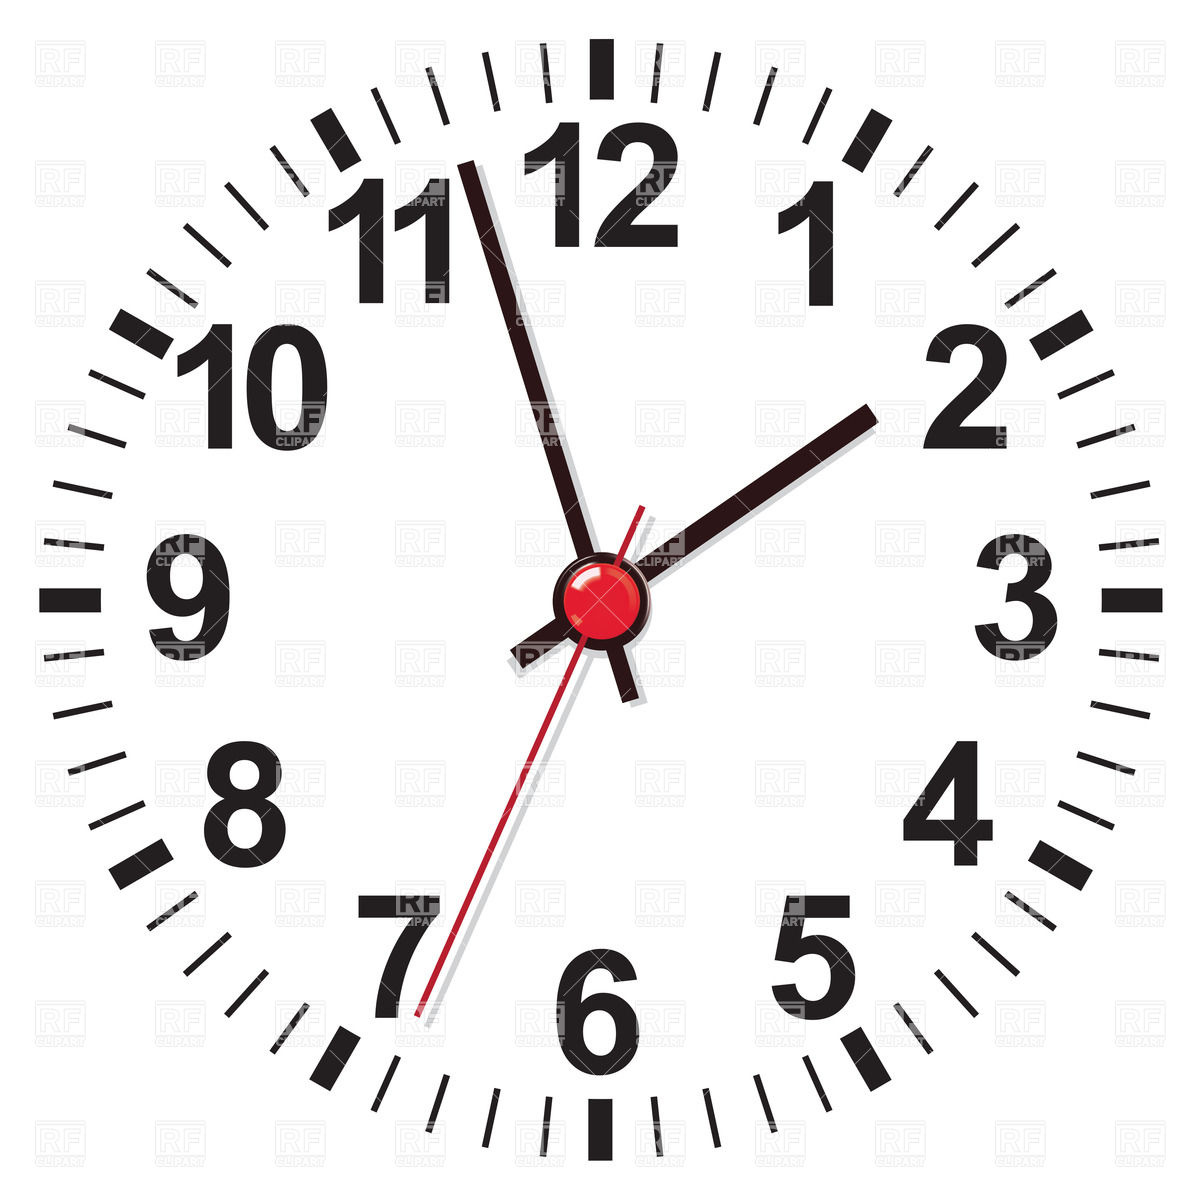 White Clock Face 27704 Objects Download -White Clock Face 27704 Objects Download Royalty Free Vector Clip-16